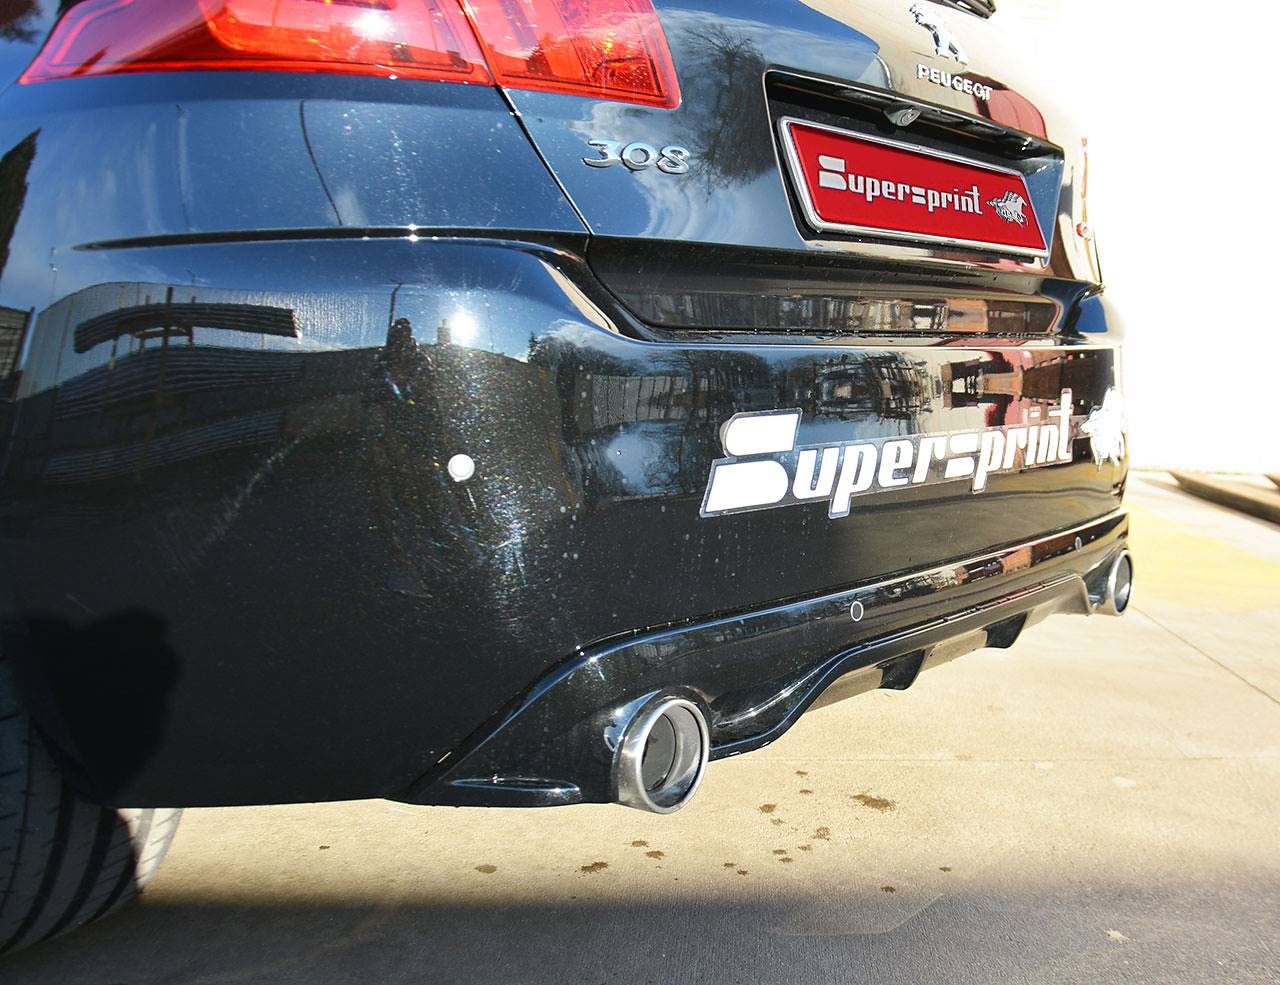 Supersprint full exhaust system installed on Peugeot 308 GTi (270 Hp)